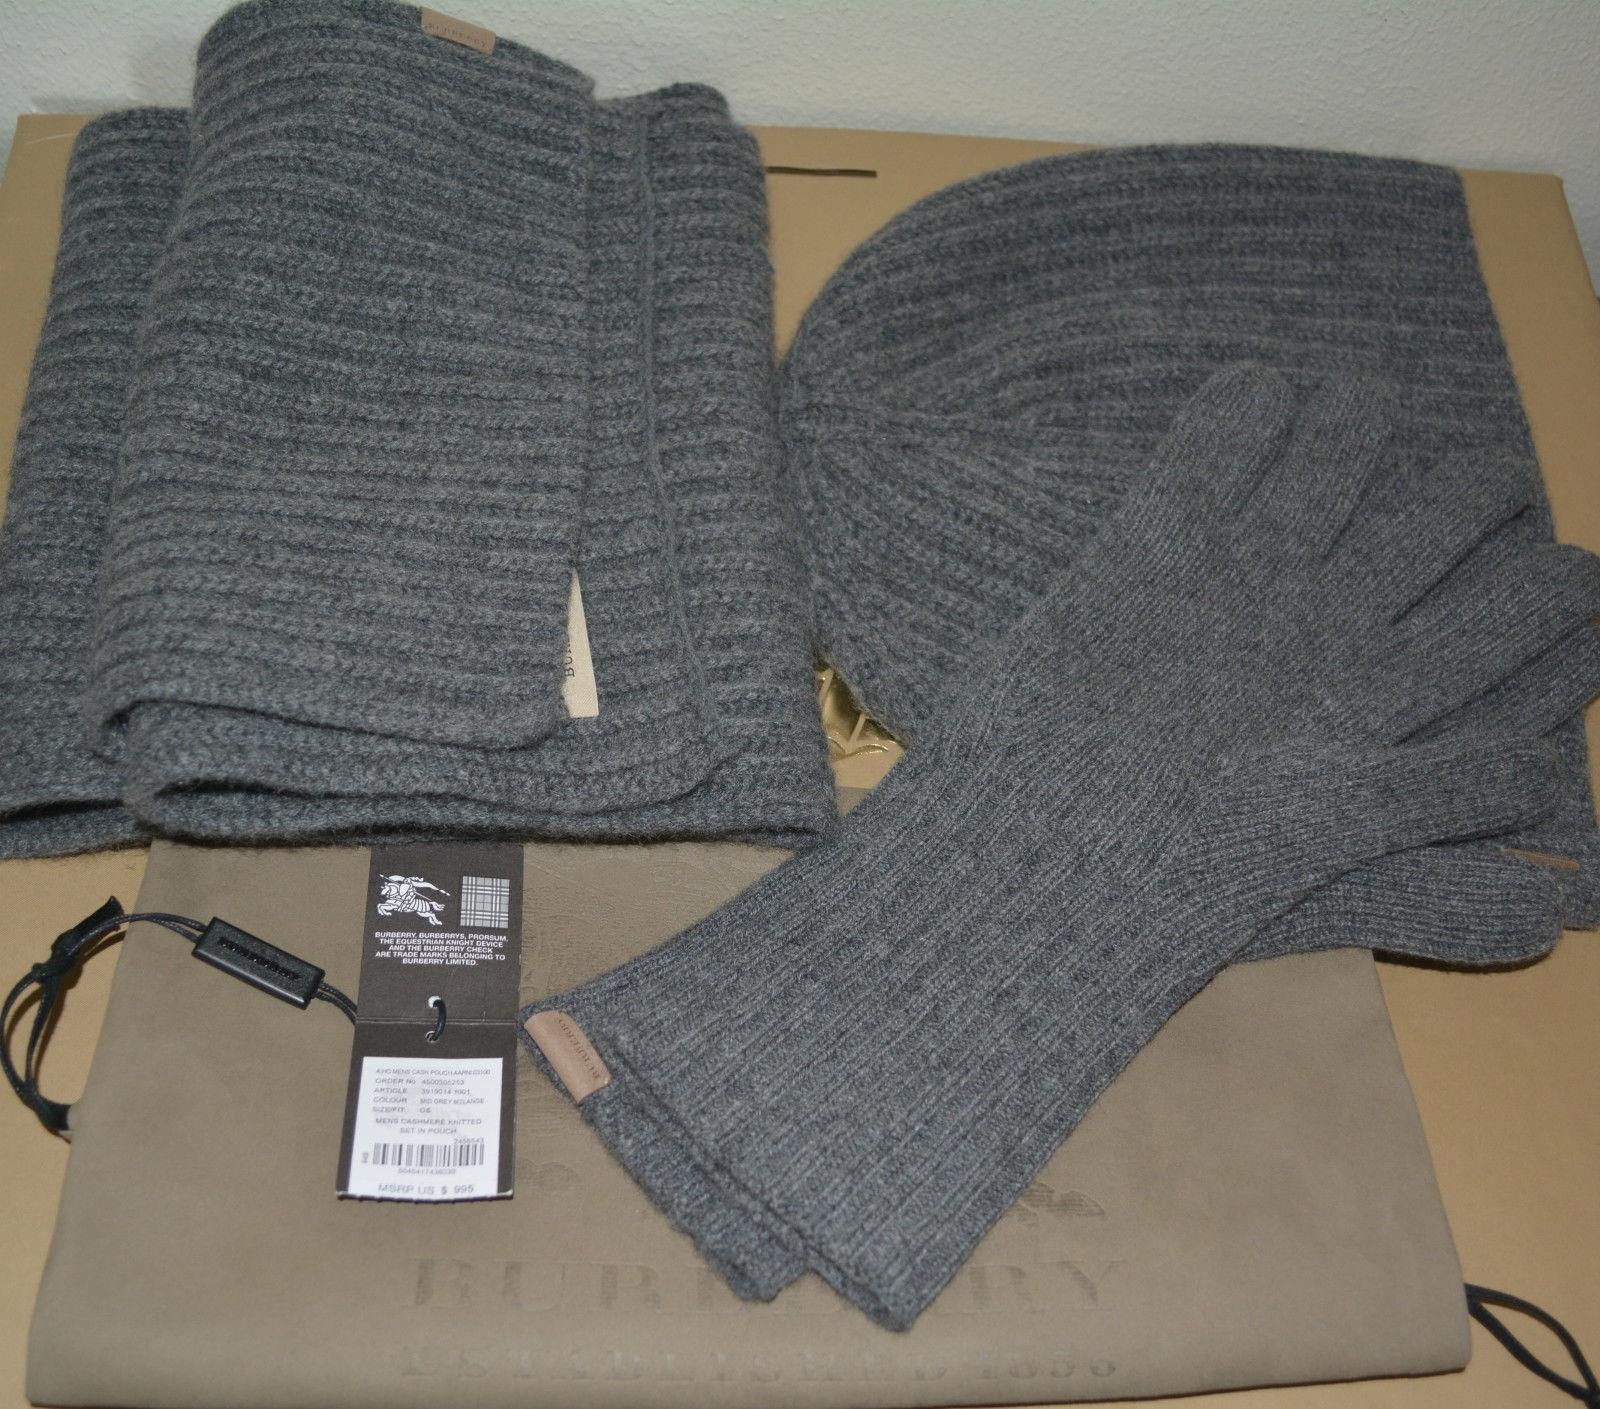 105e35827d1 discount code for burberry grey cashmere gloves set in pouch scarf wrap  tradesy e8ed6 9f098